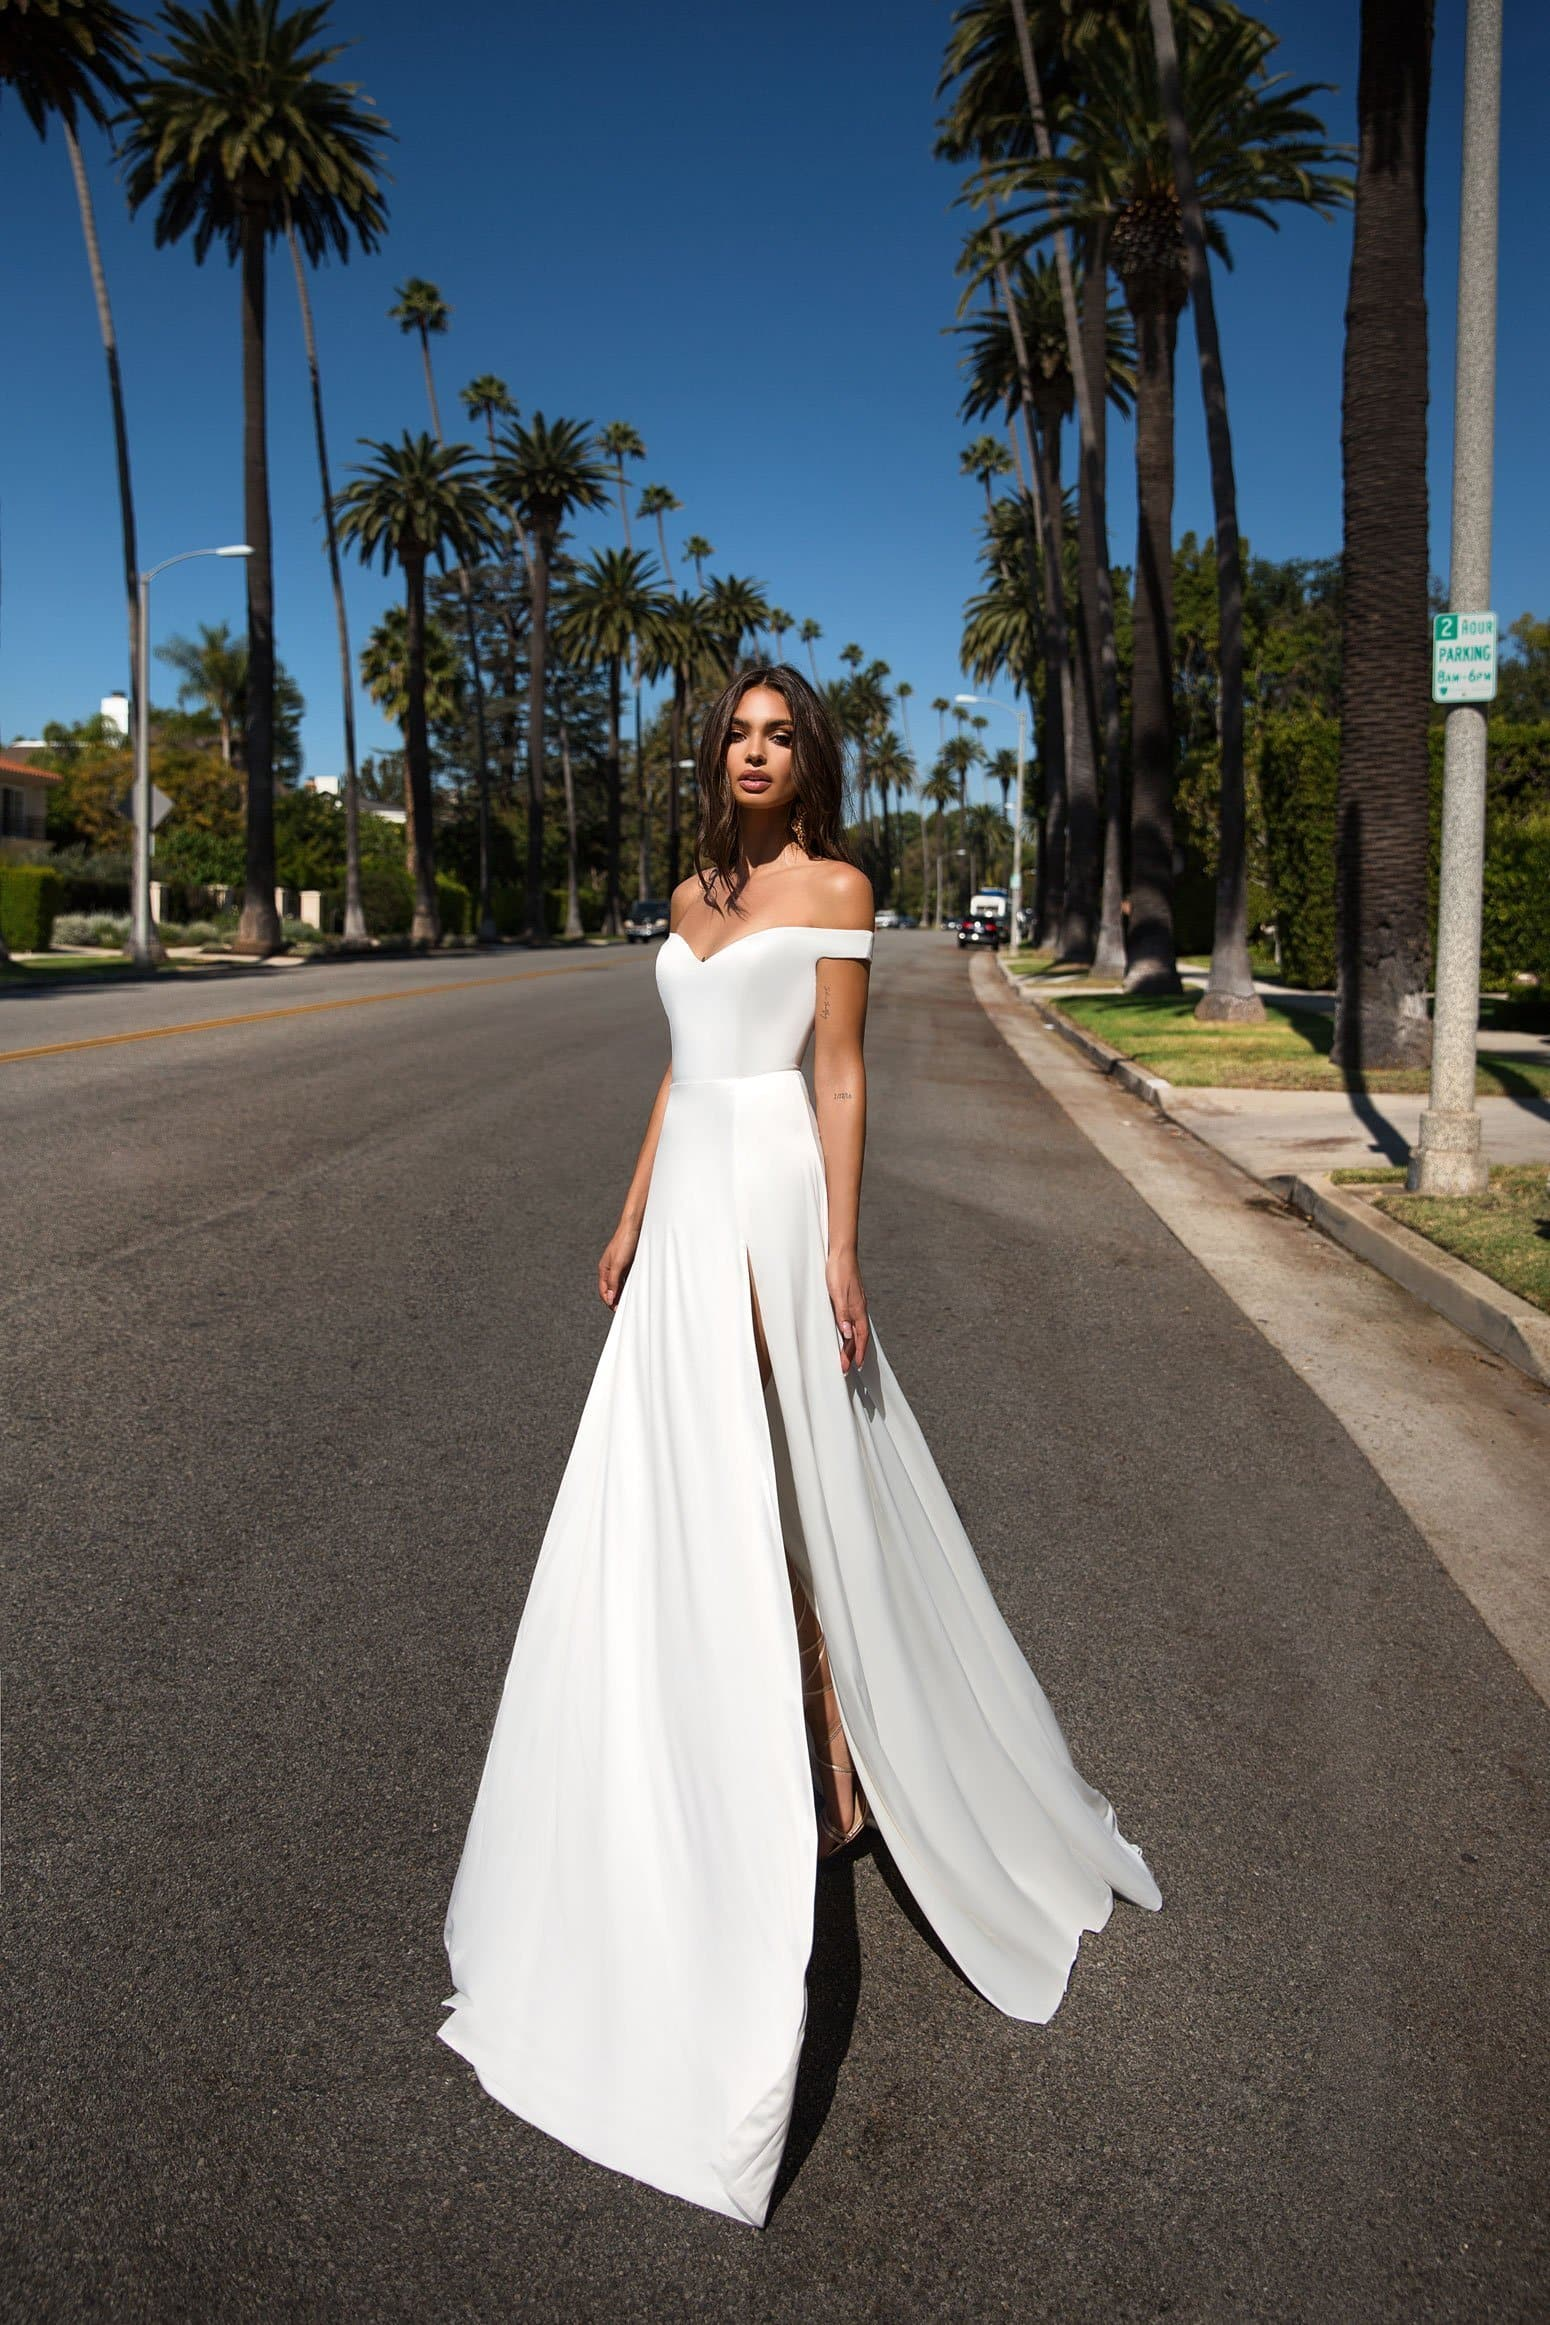 Florentina - White Satin Gown with Sweetheart Neckline & Side Slits